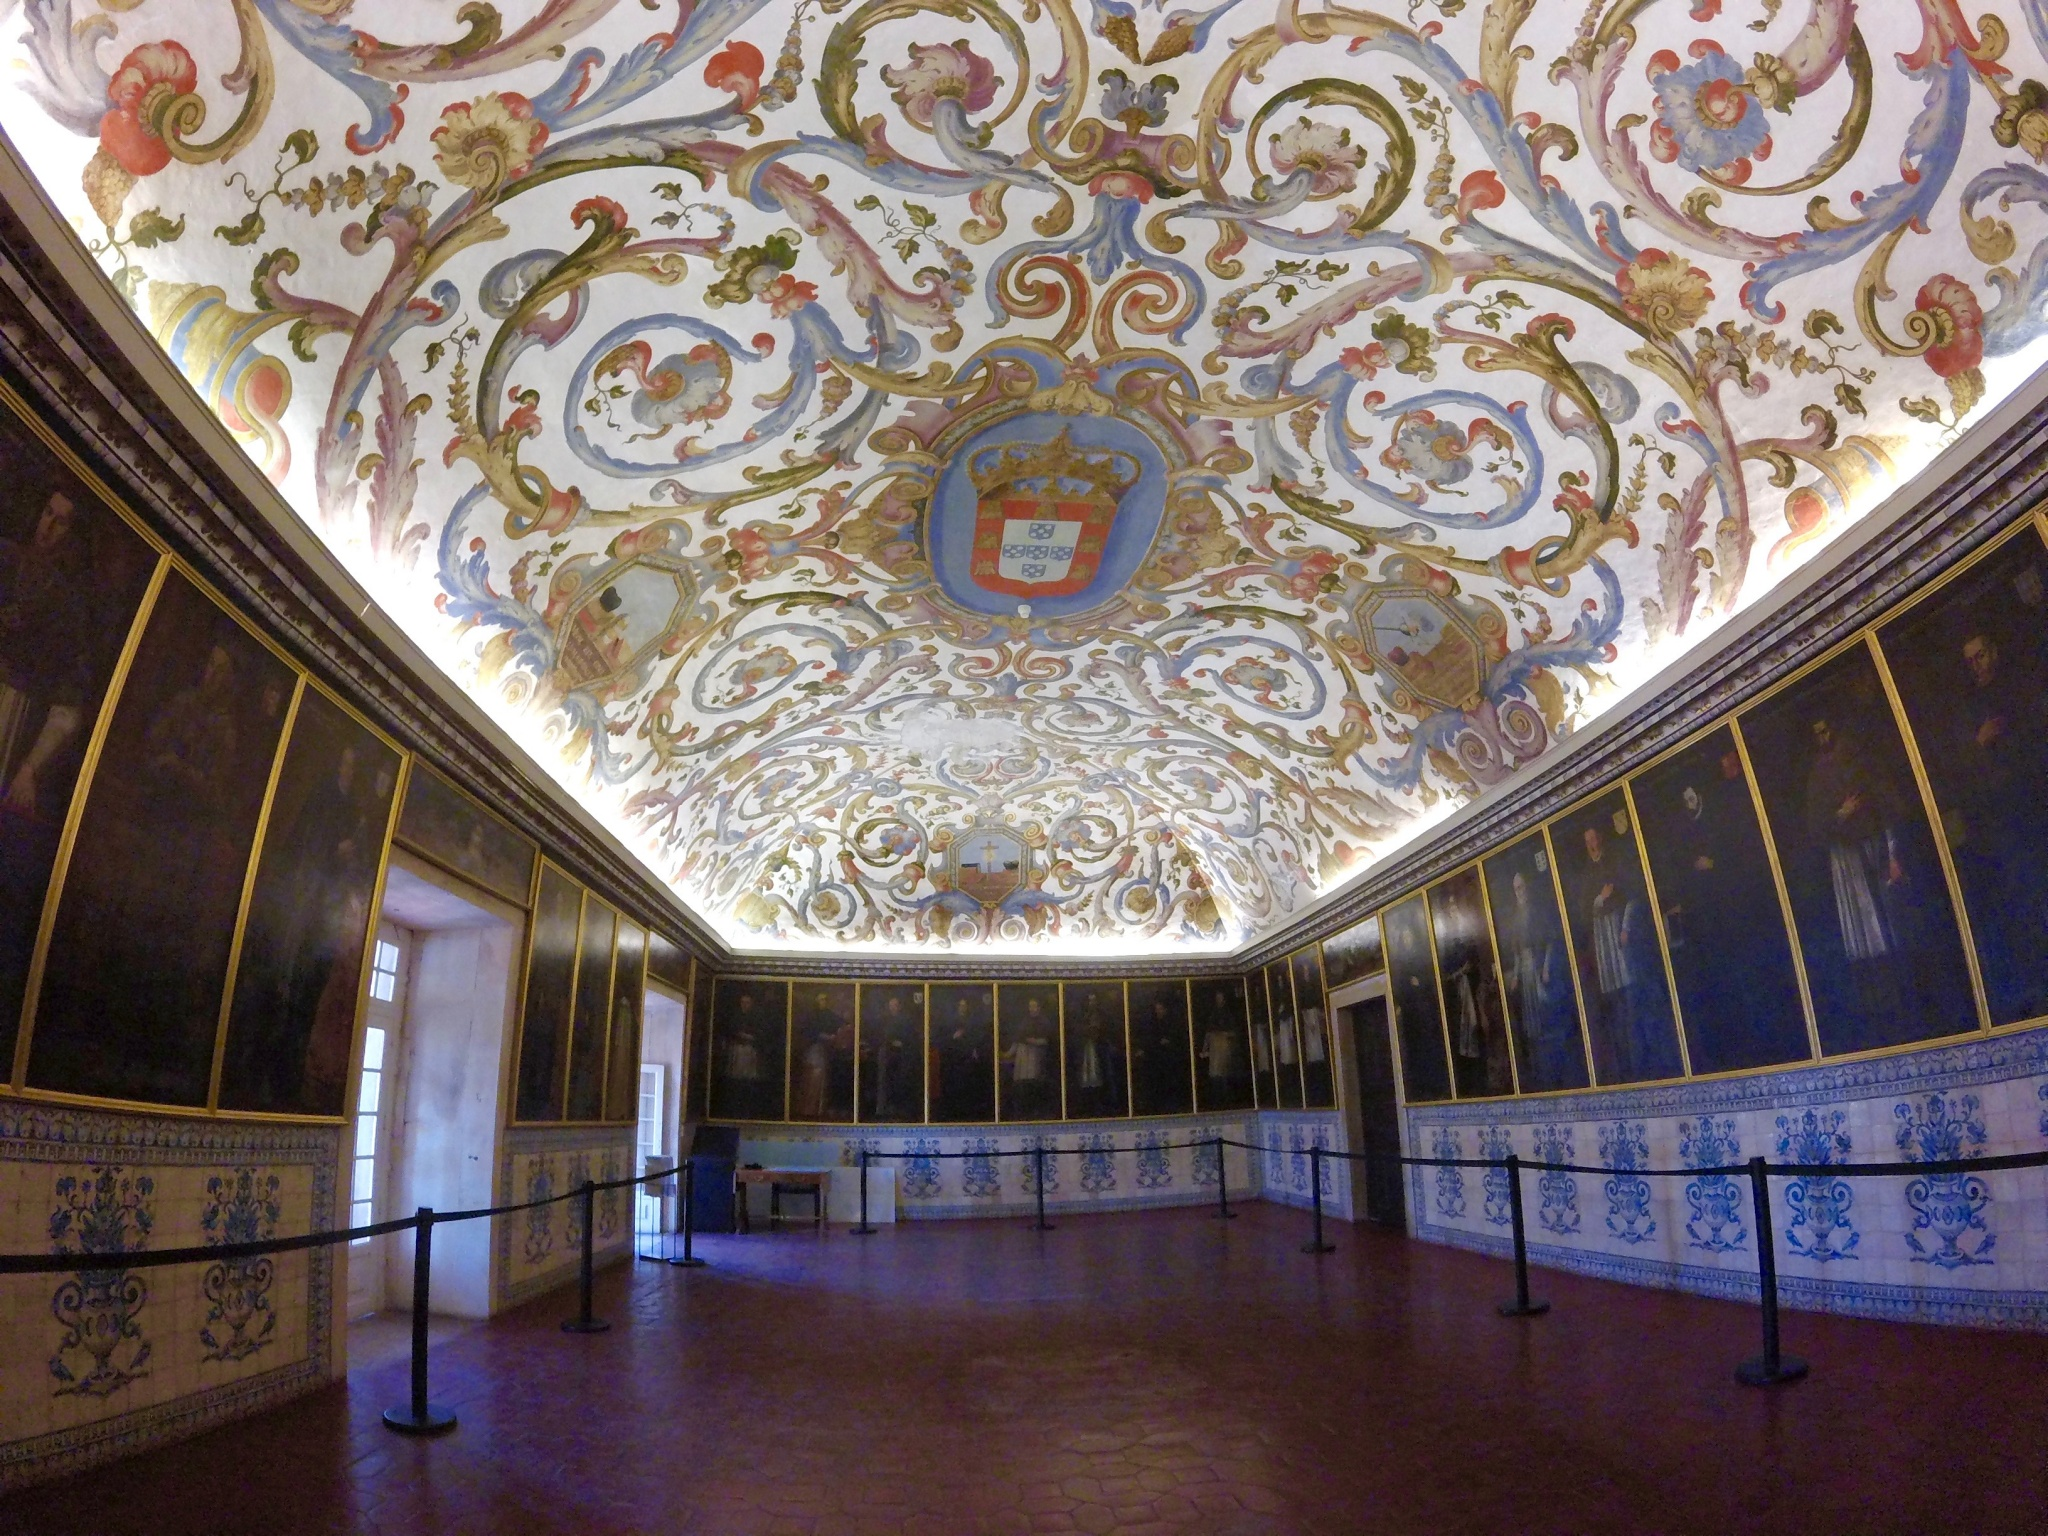 The Royal Palace of Alcáçova's Sala dos Capelos